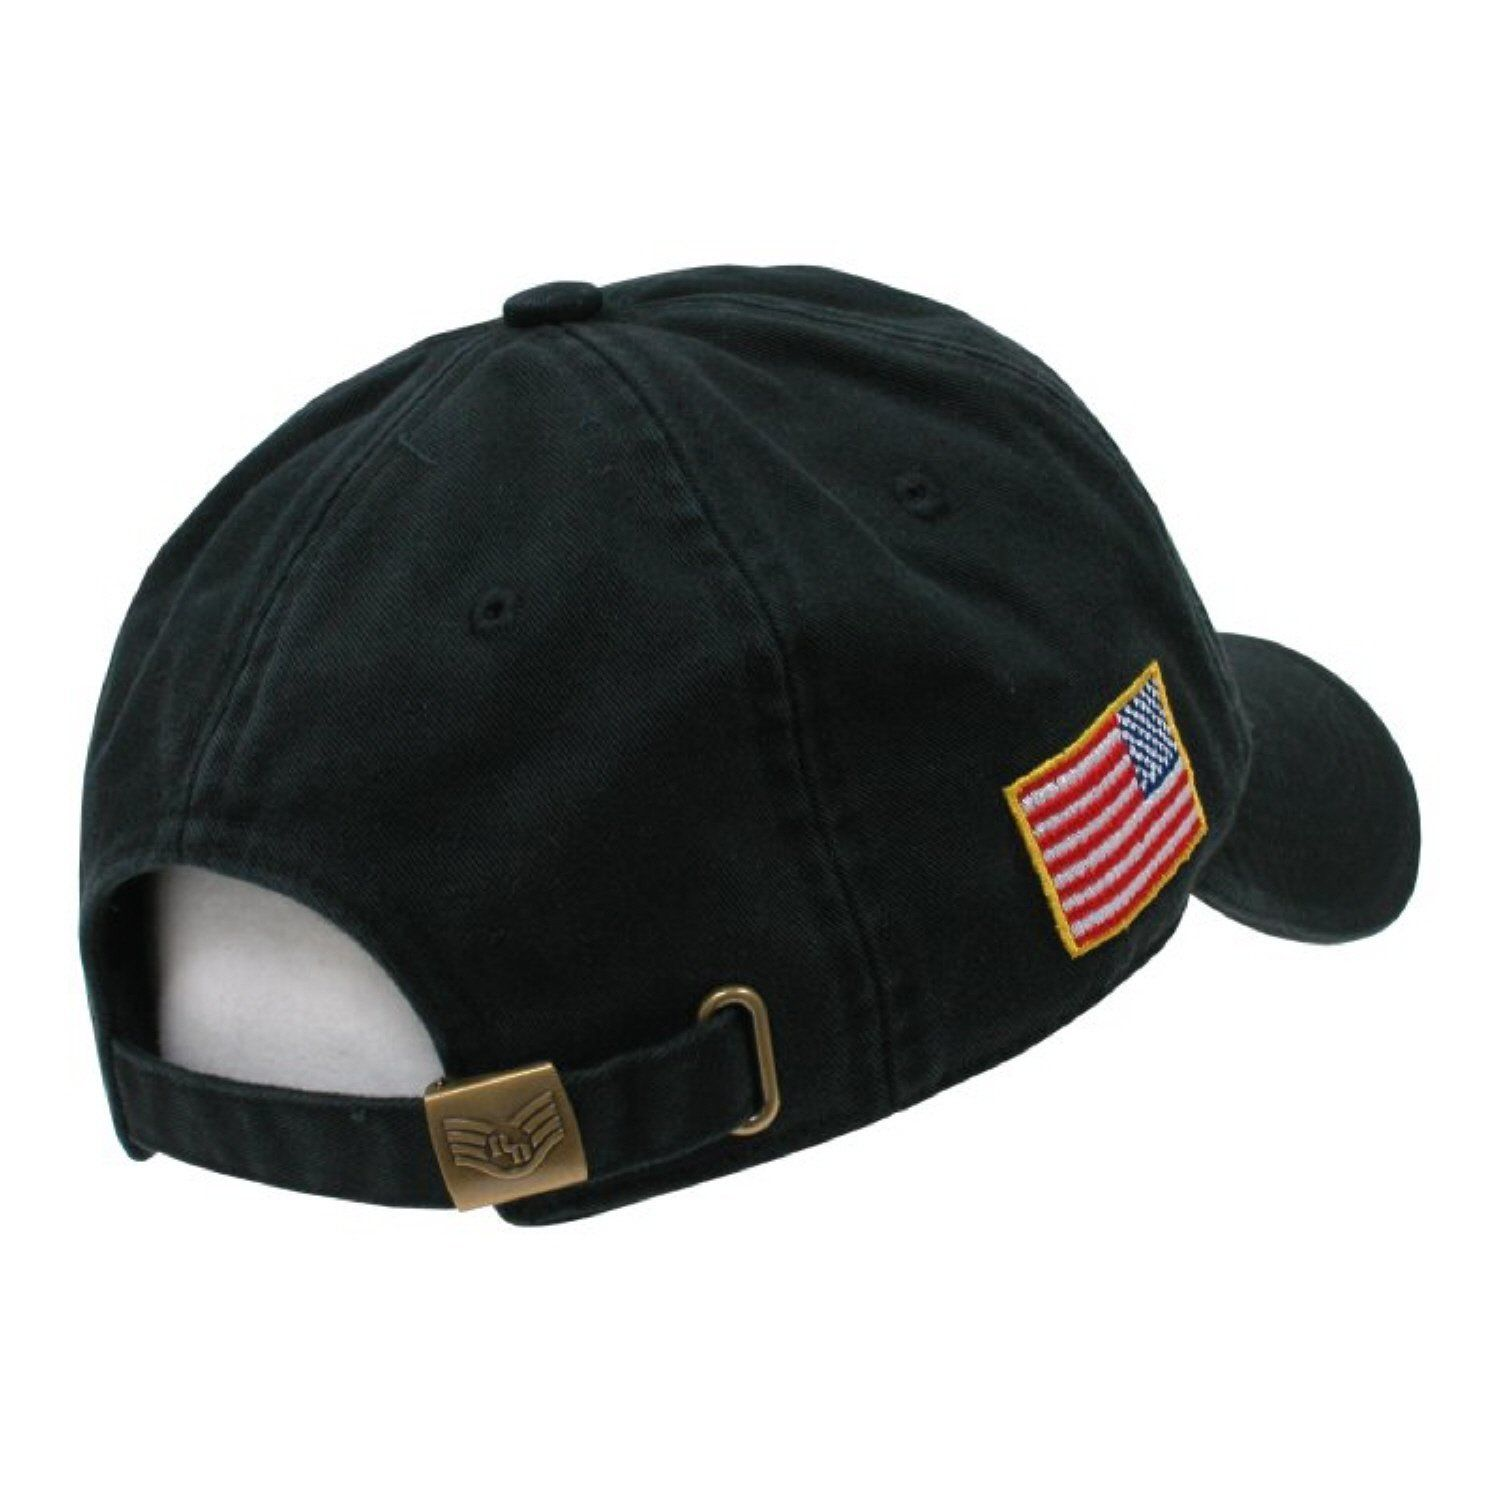 1500x1500 Black Police Officer Cops Low Profile Baseball Cap Caps Hat Hats